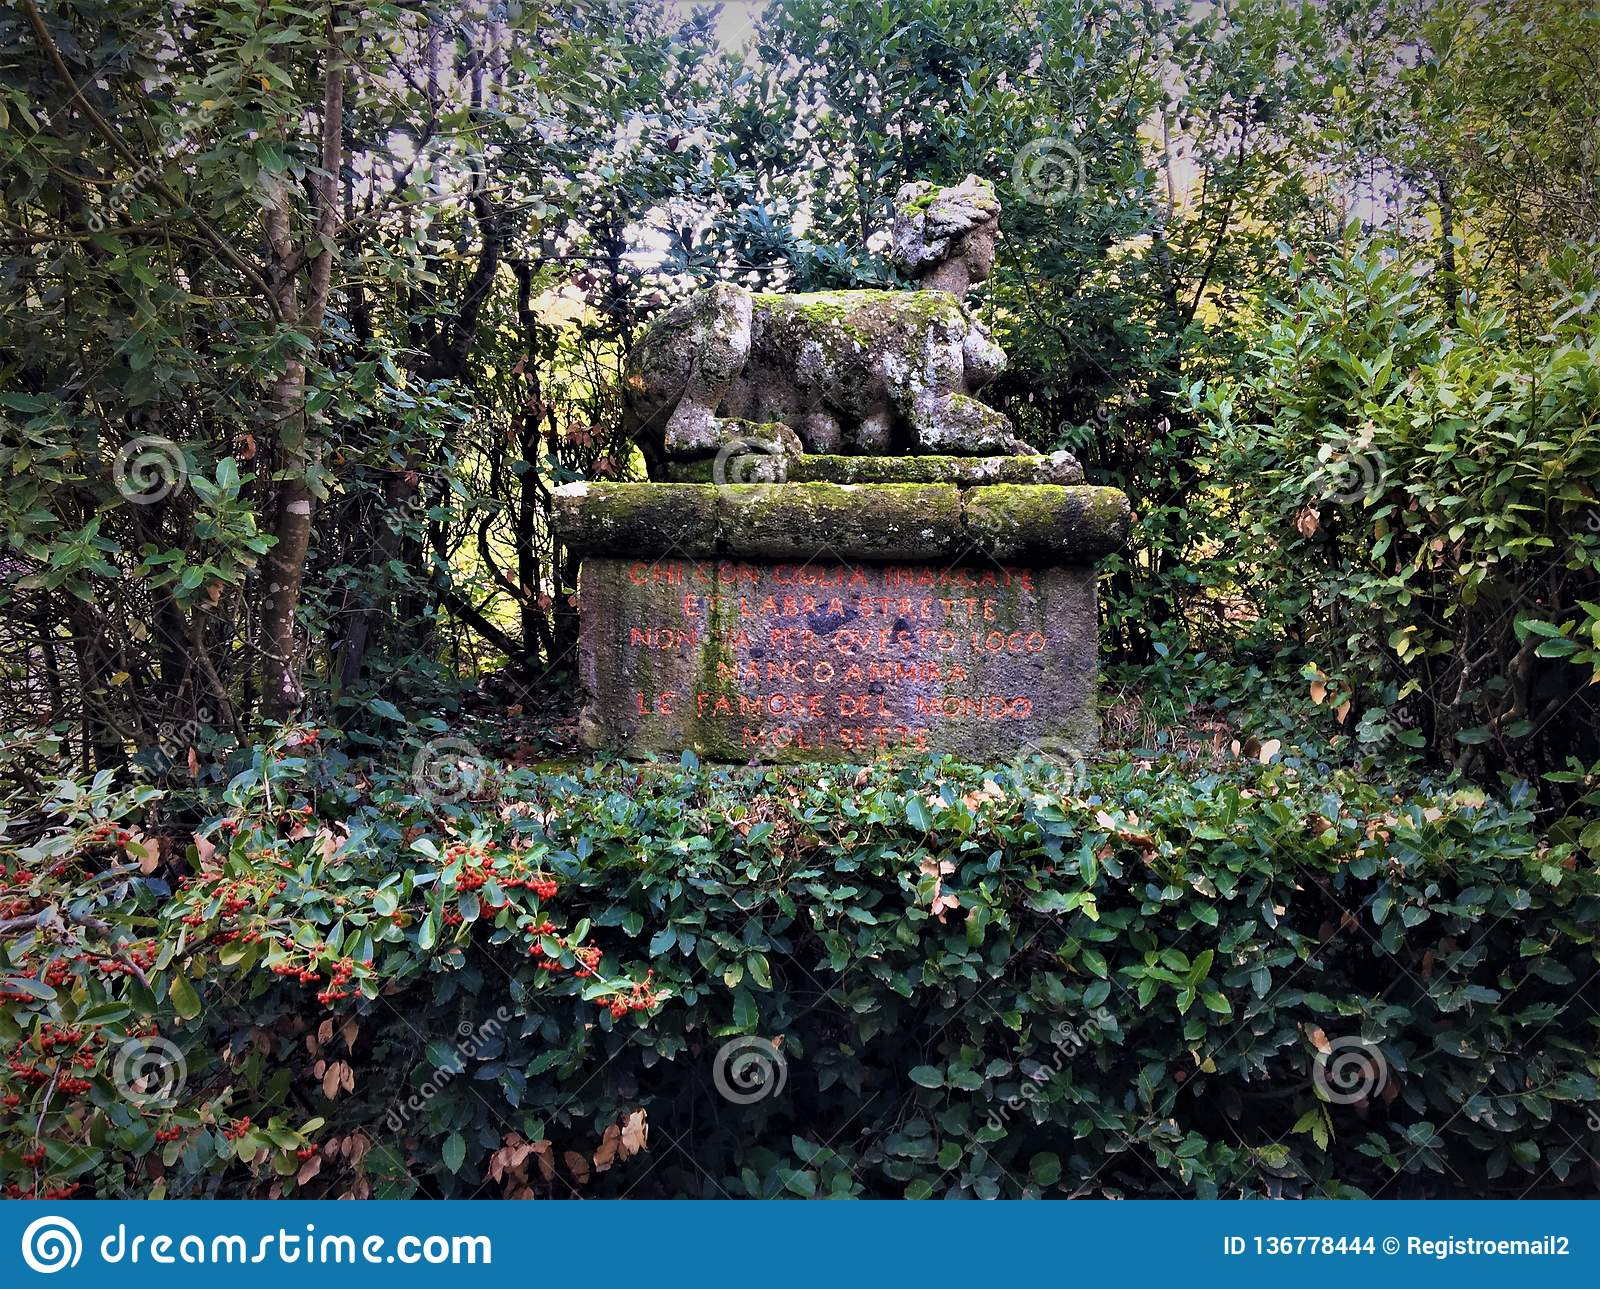 Park of the Monsters, Sacred Grove, Garden of Bomarzo. Sphinx, vegetation and alchemy